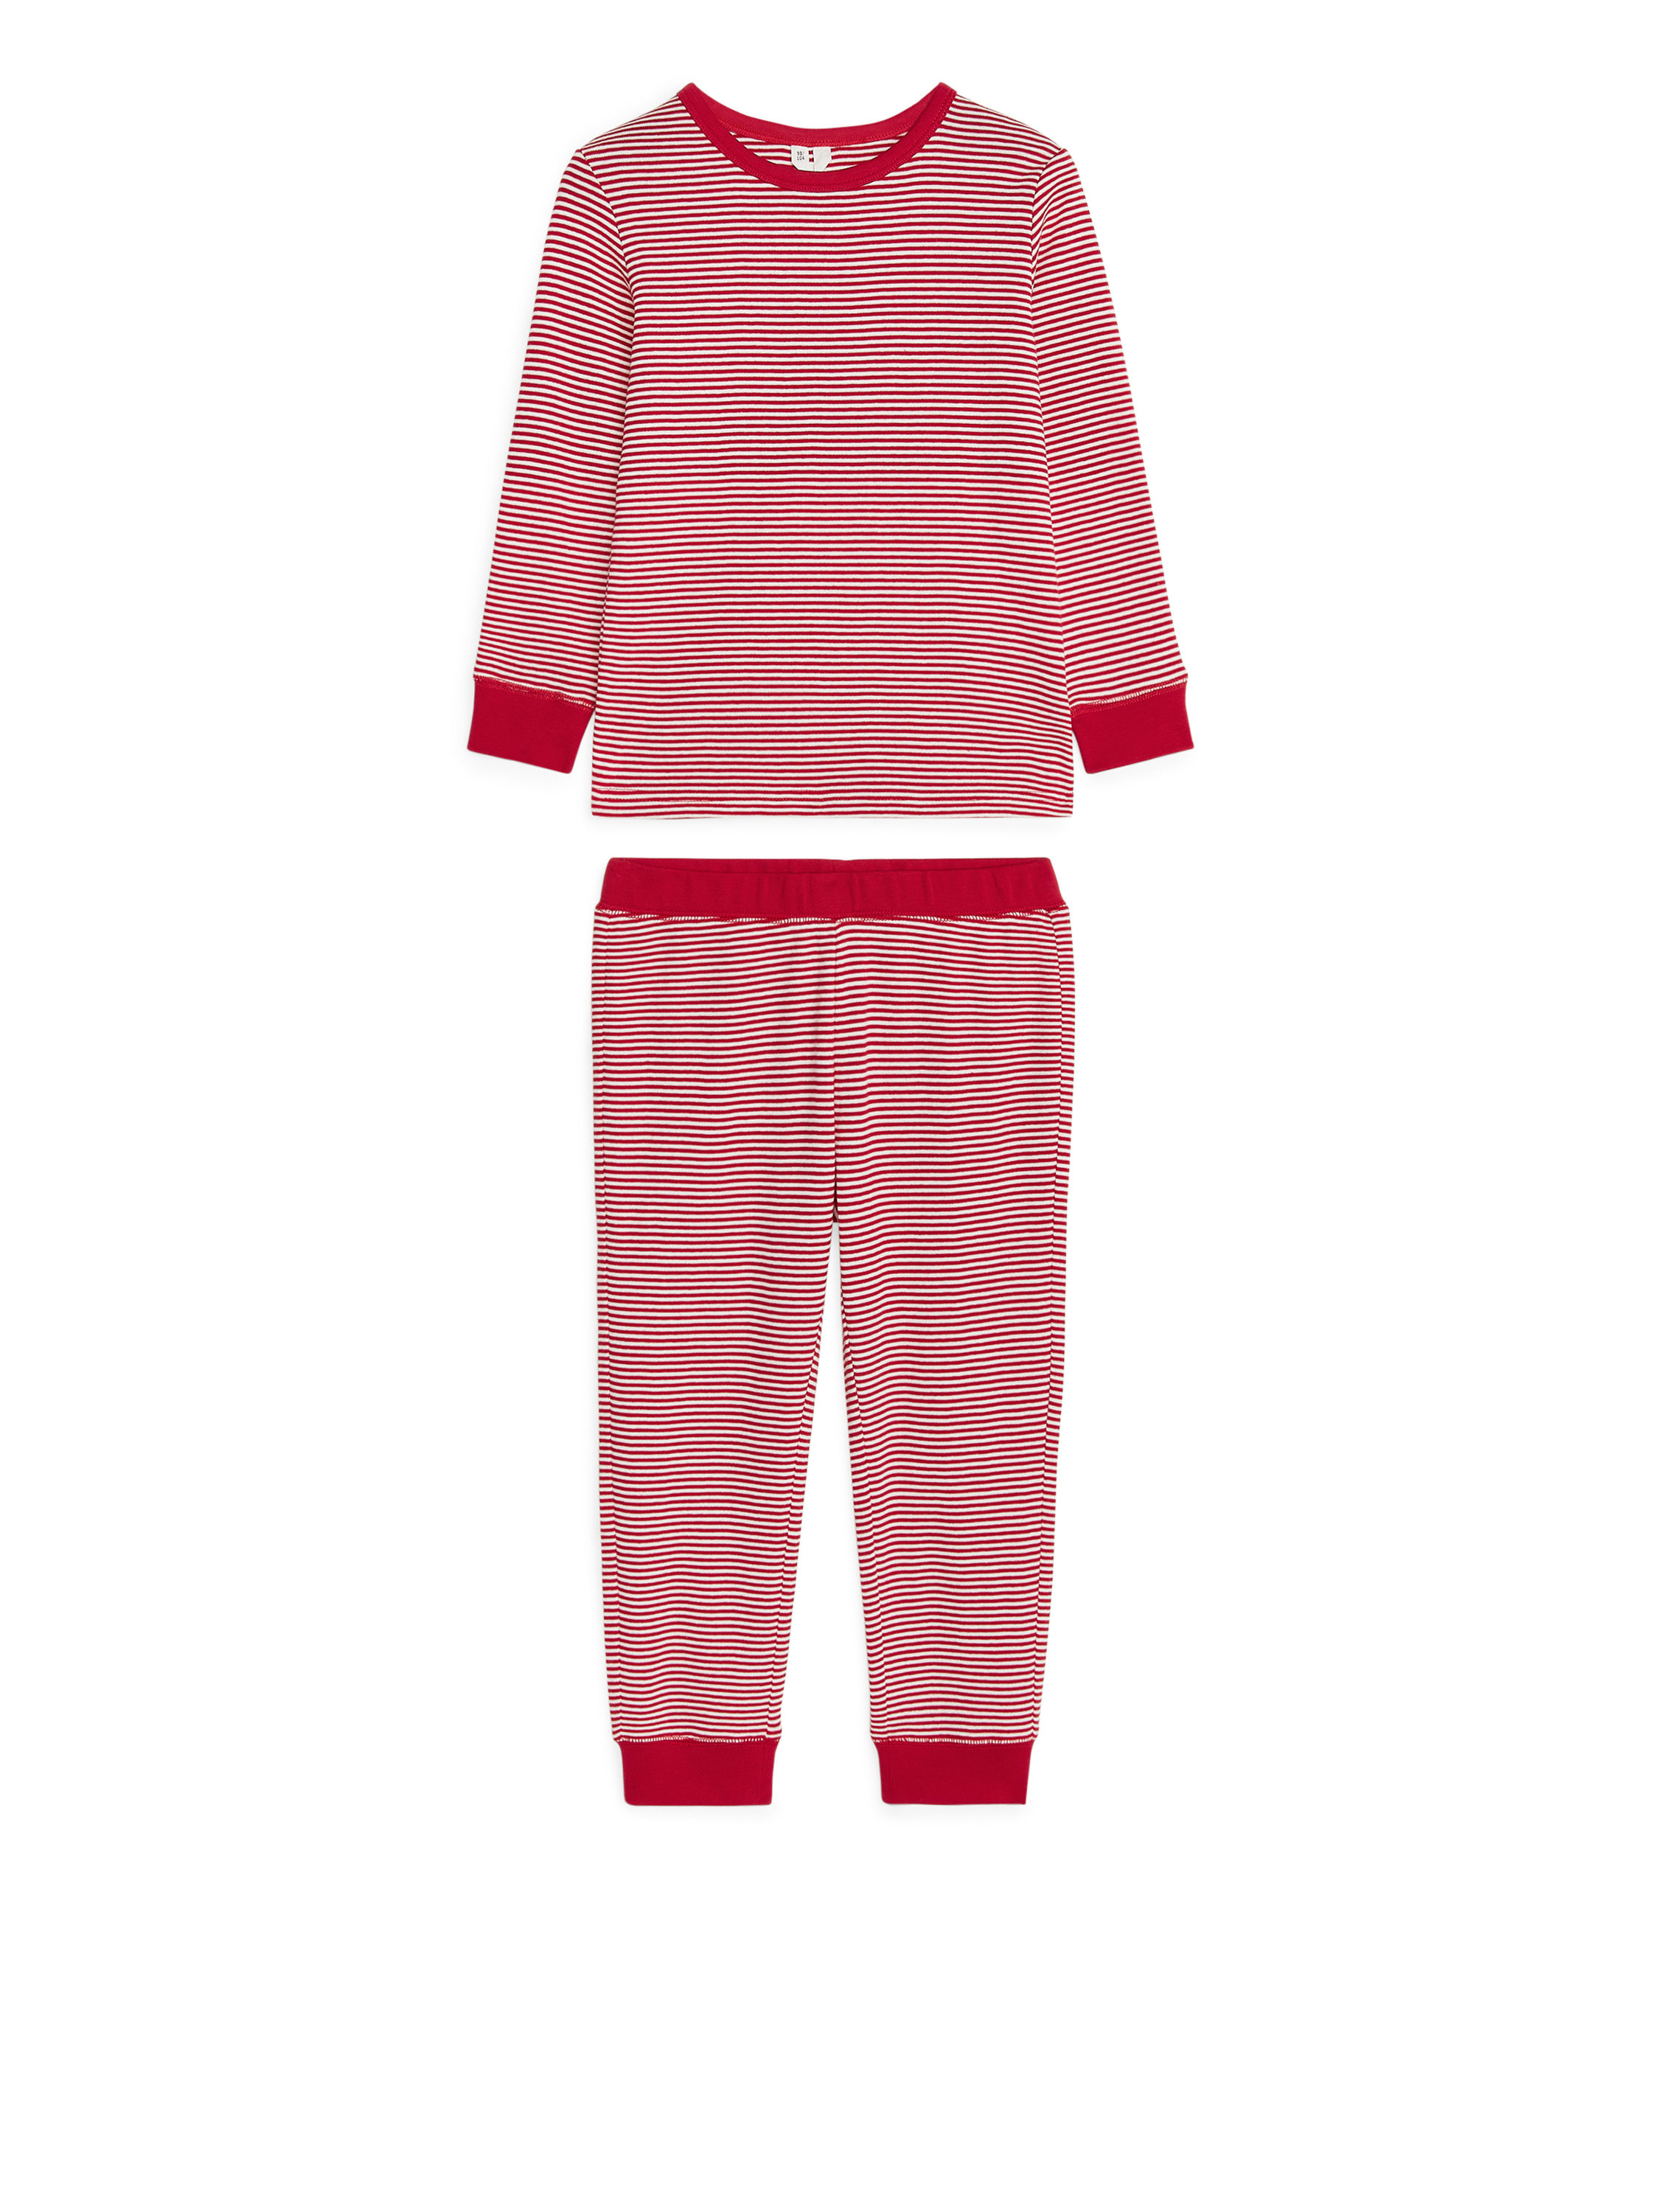 Fabric Swatch image of Arket jersey pyjama set in red